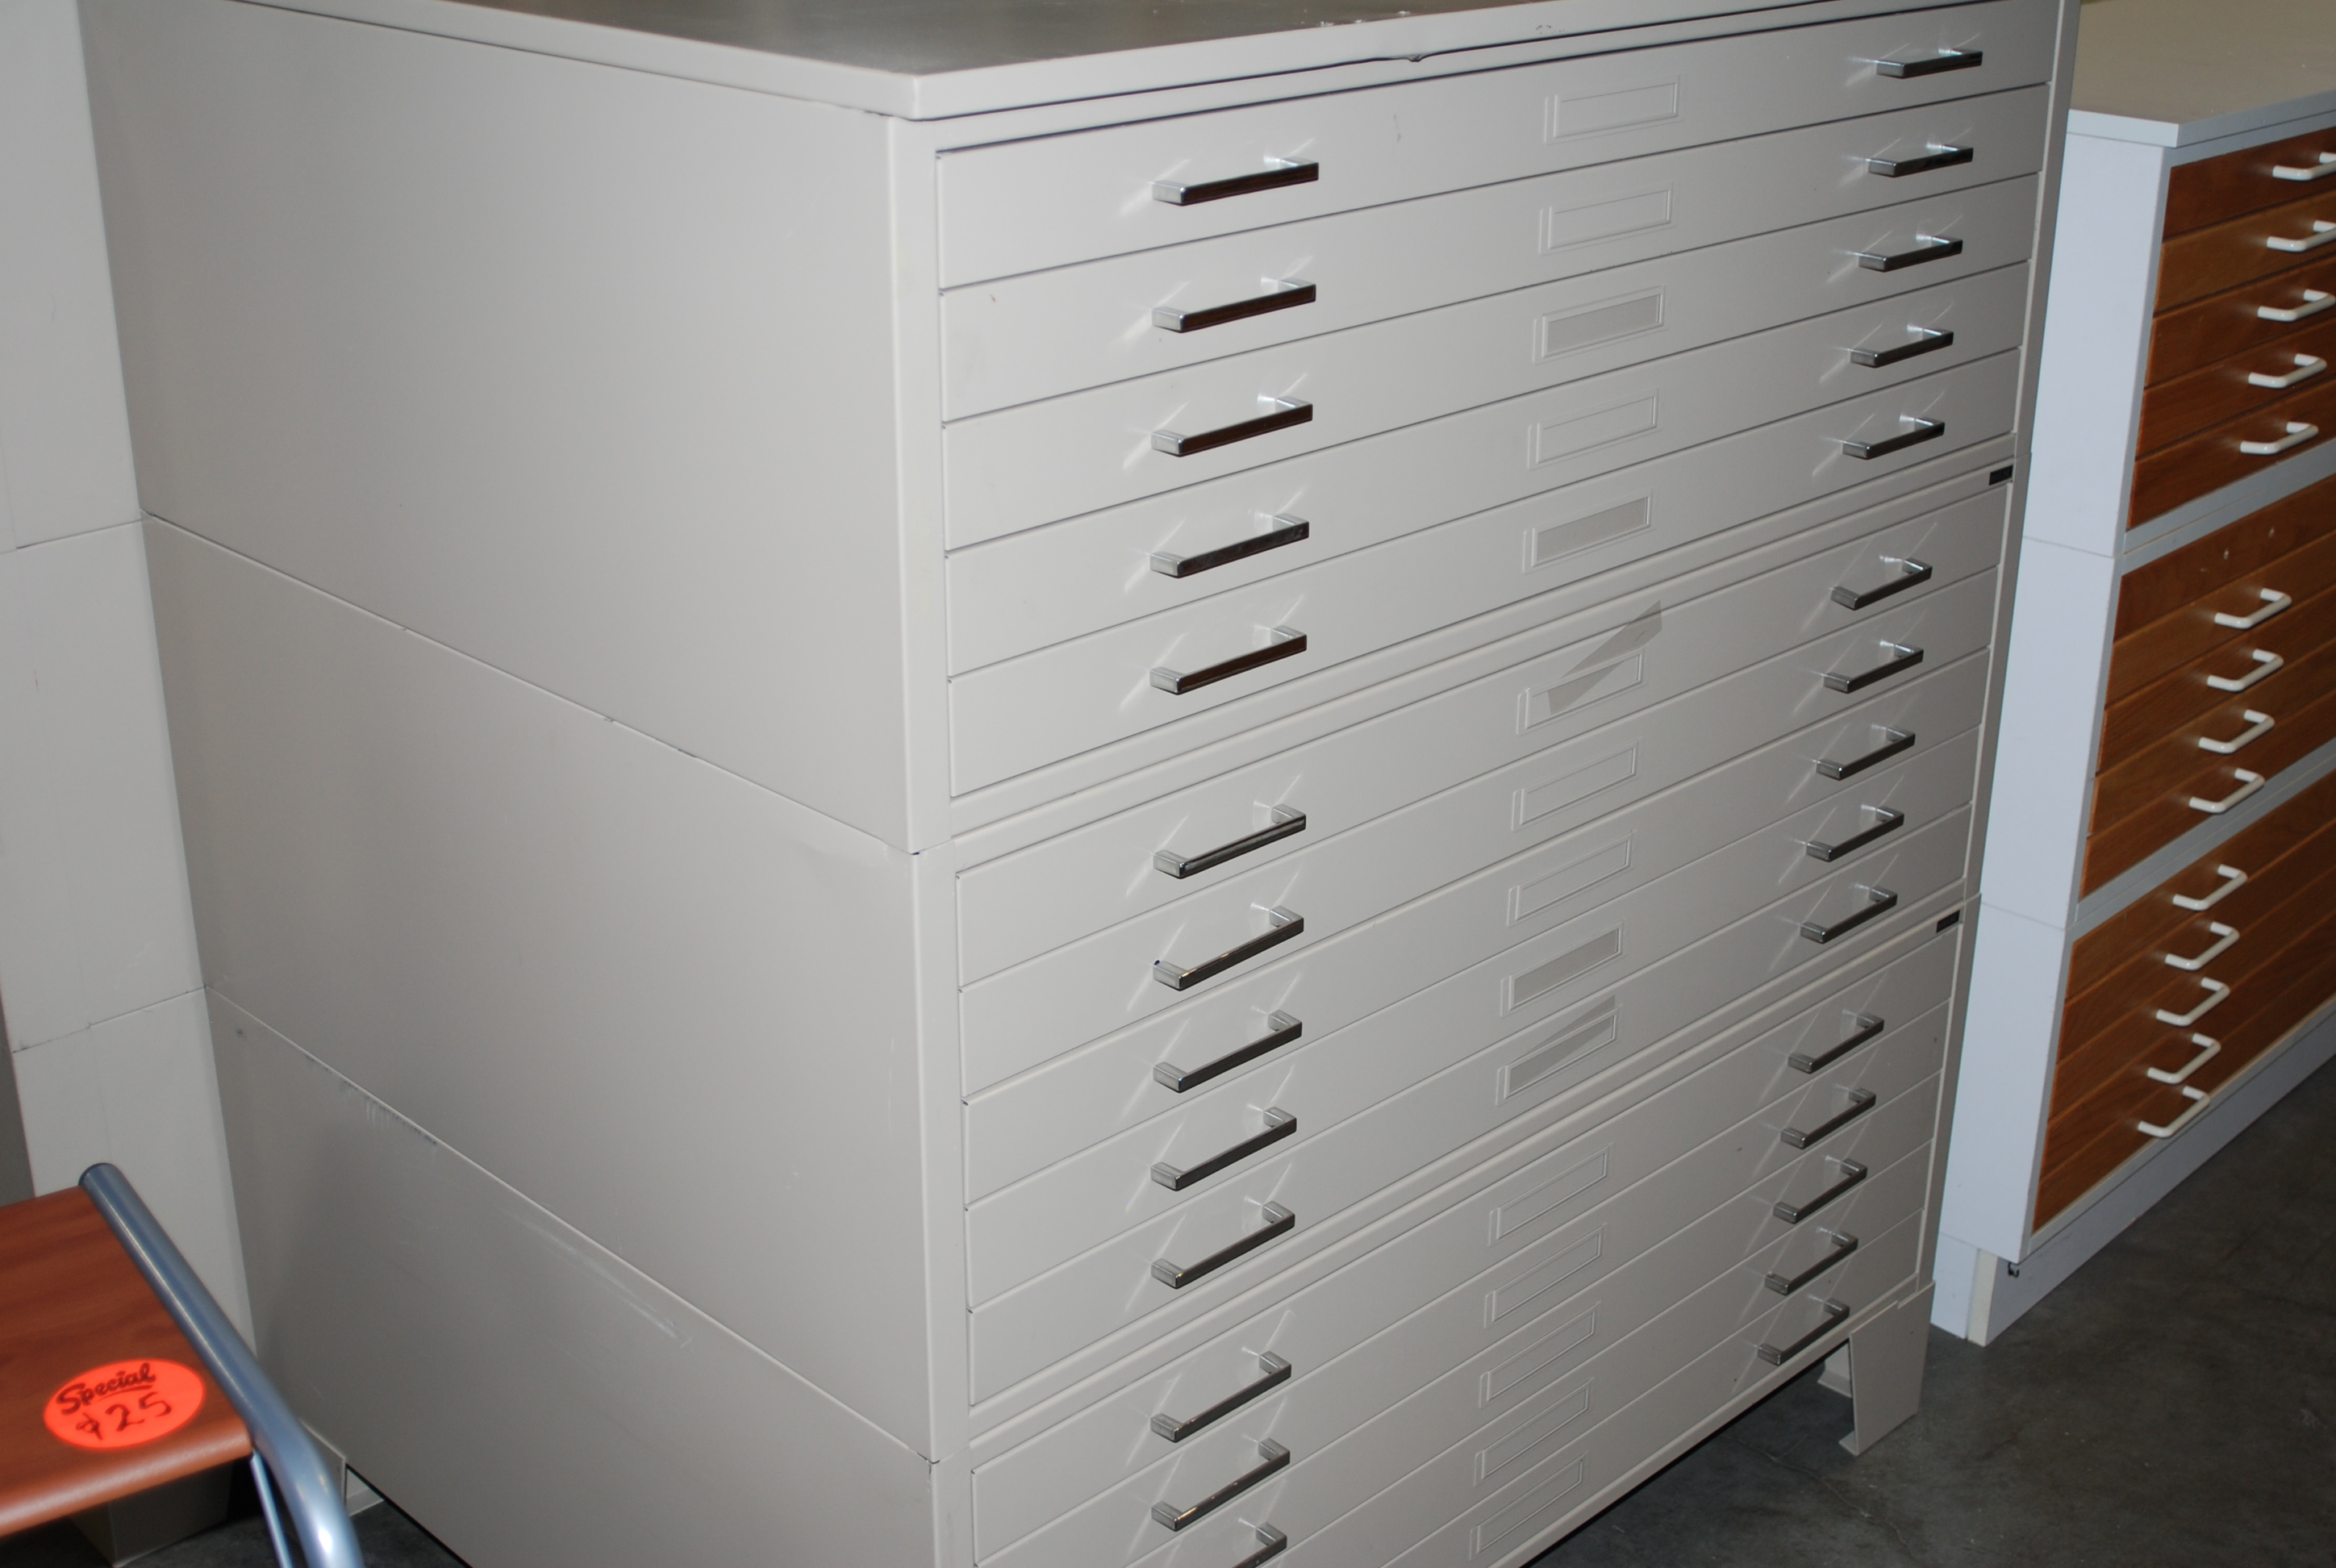 Used flat files roll files plan racks hoppers drafting furniture used set of flat files set of three 3 5 drawer mayline metal flat files with base drawers will hold up to 30 x 42 drawings malvernweather Choice Image